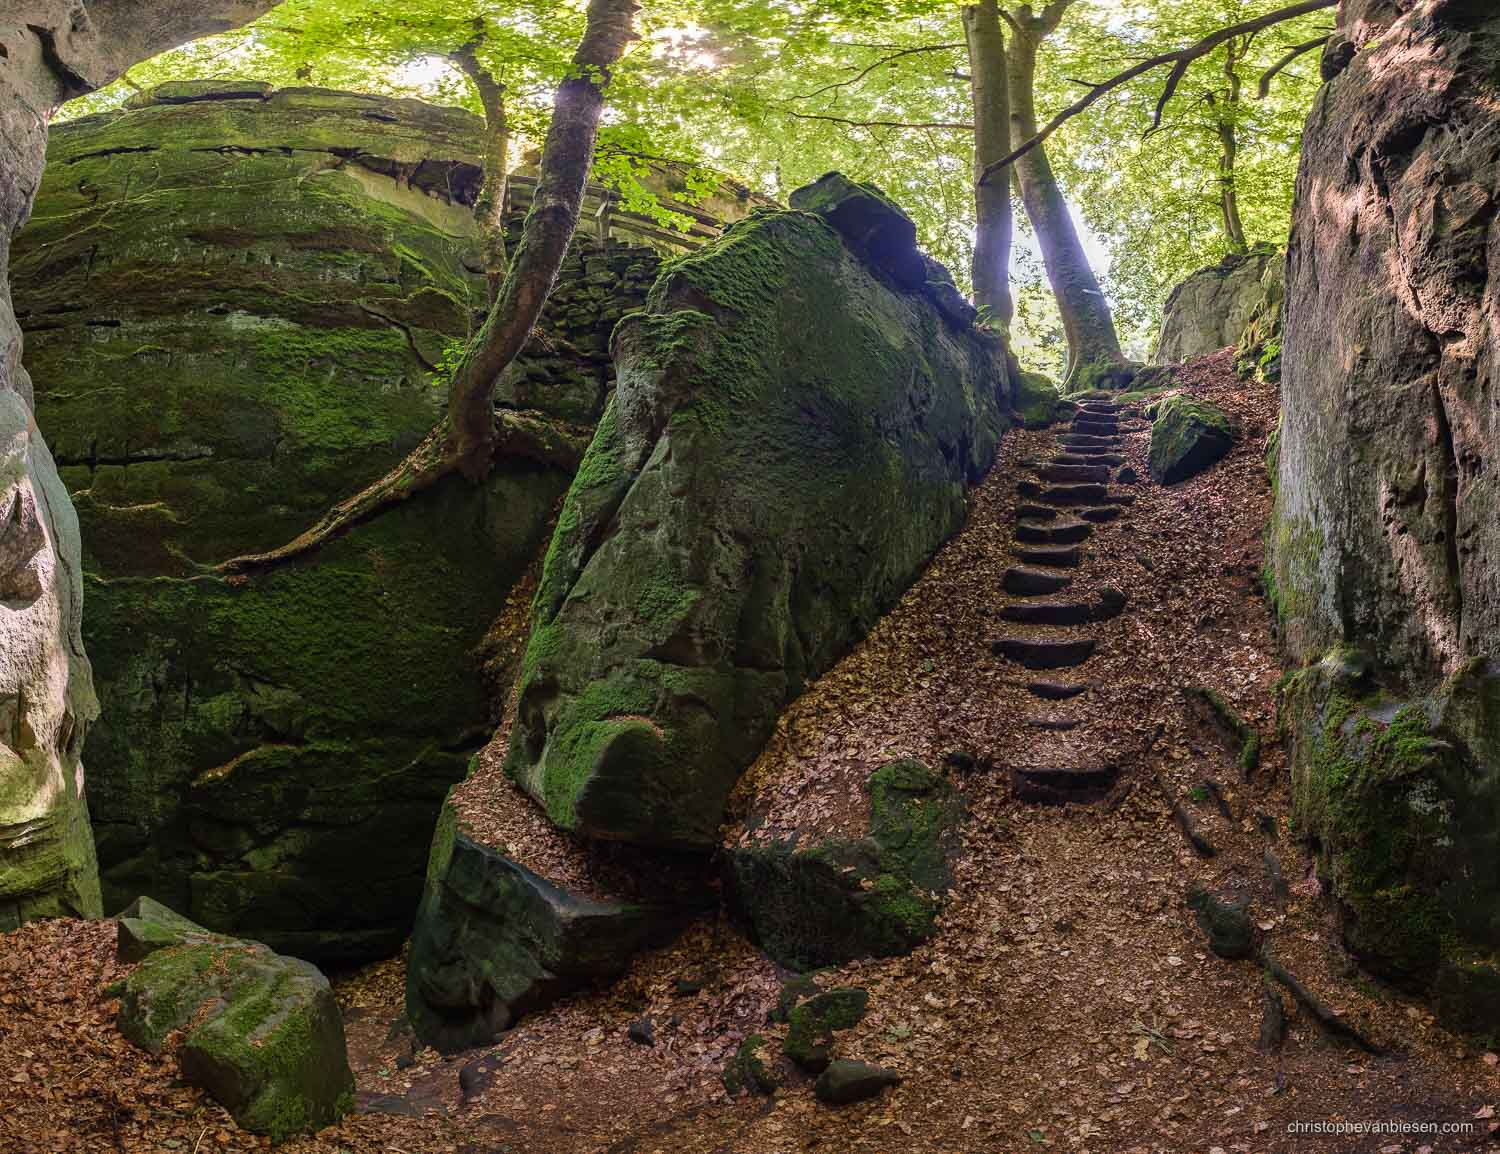 Visit the Mullerthal - Luxembourg - Path through the Mullerthal rock formations in eastern Luxembourg - Goldfralay